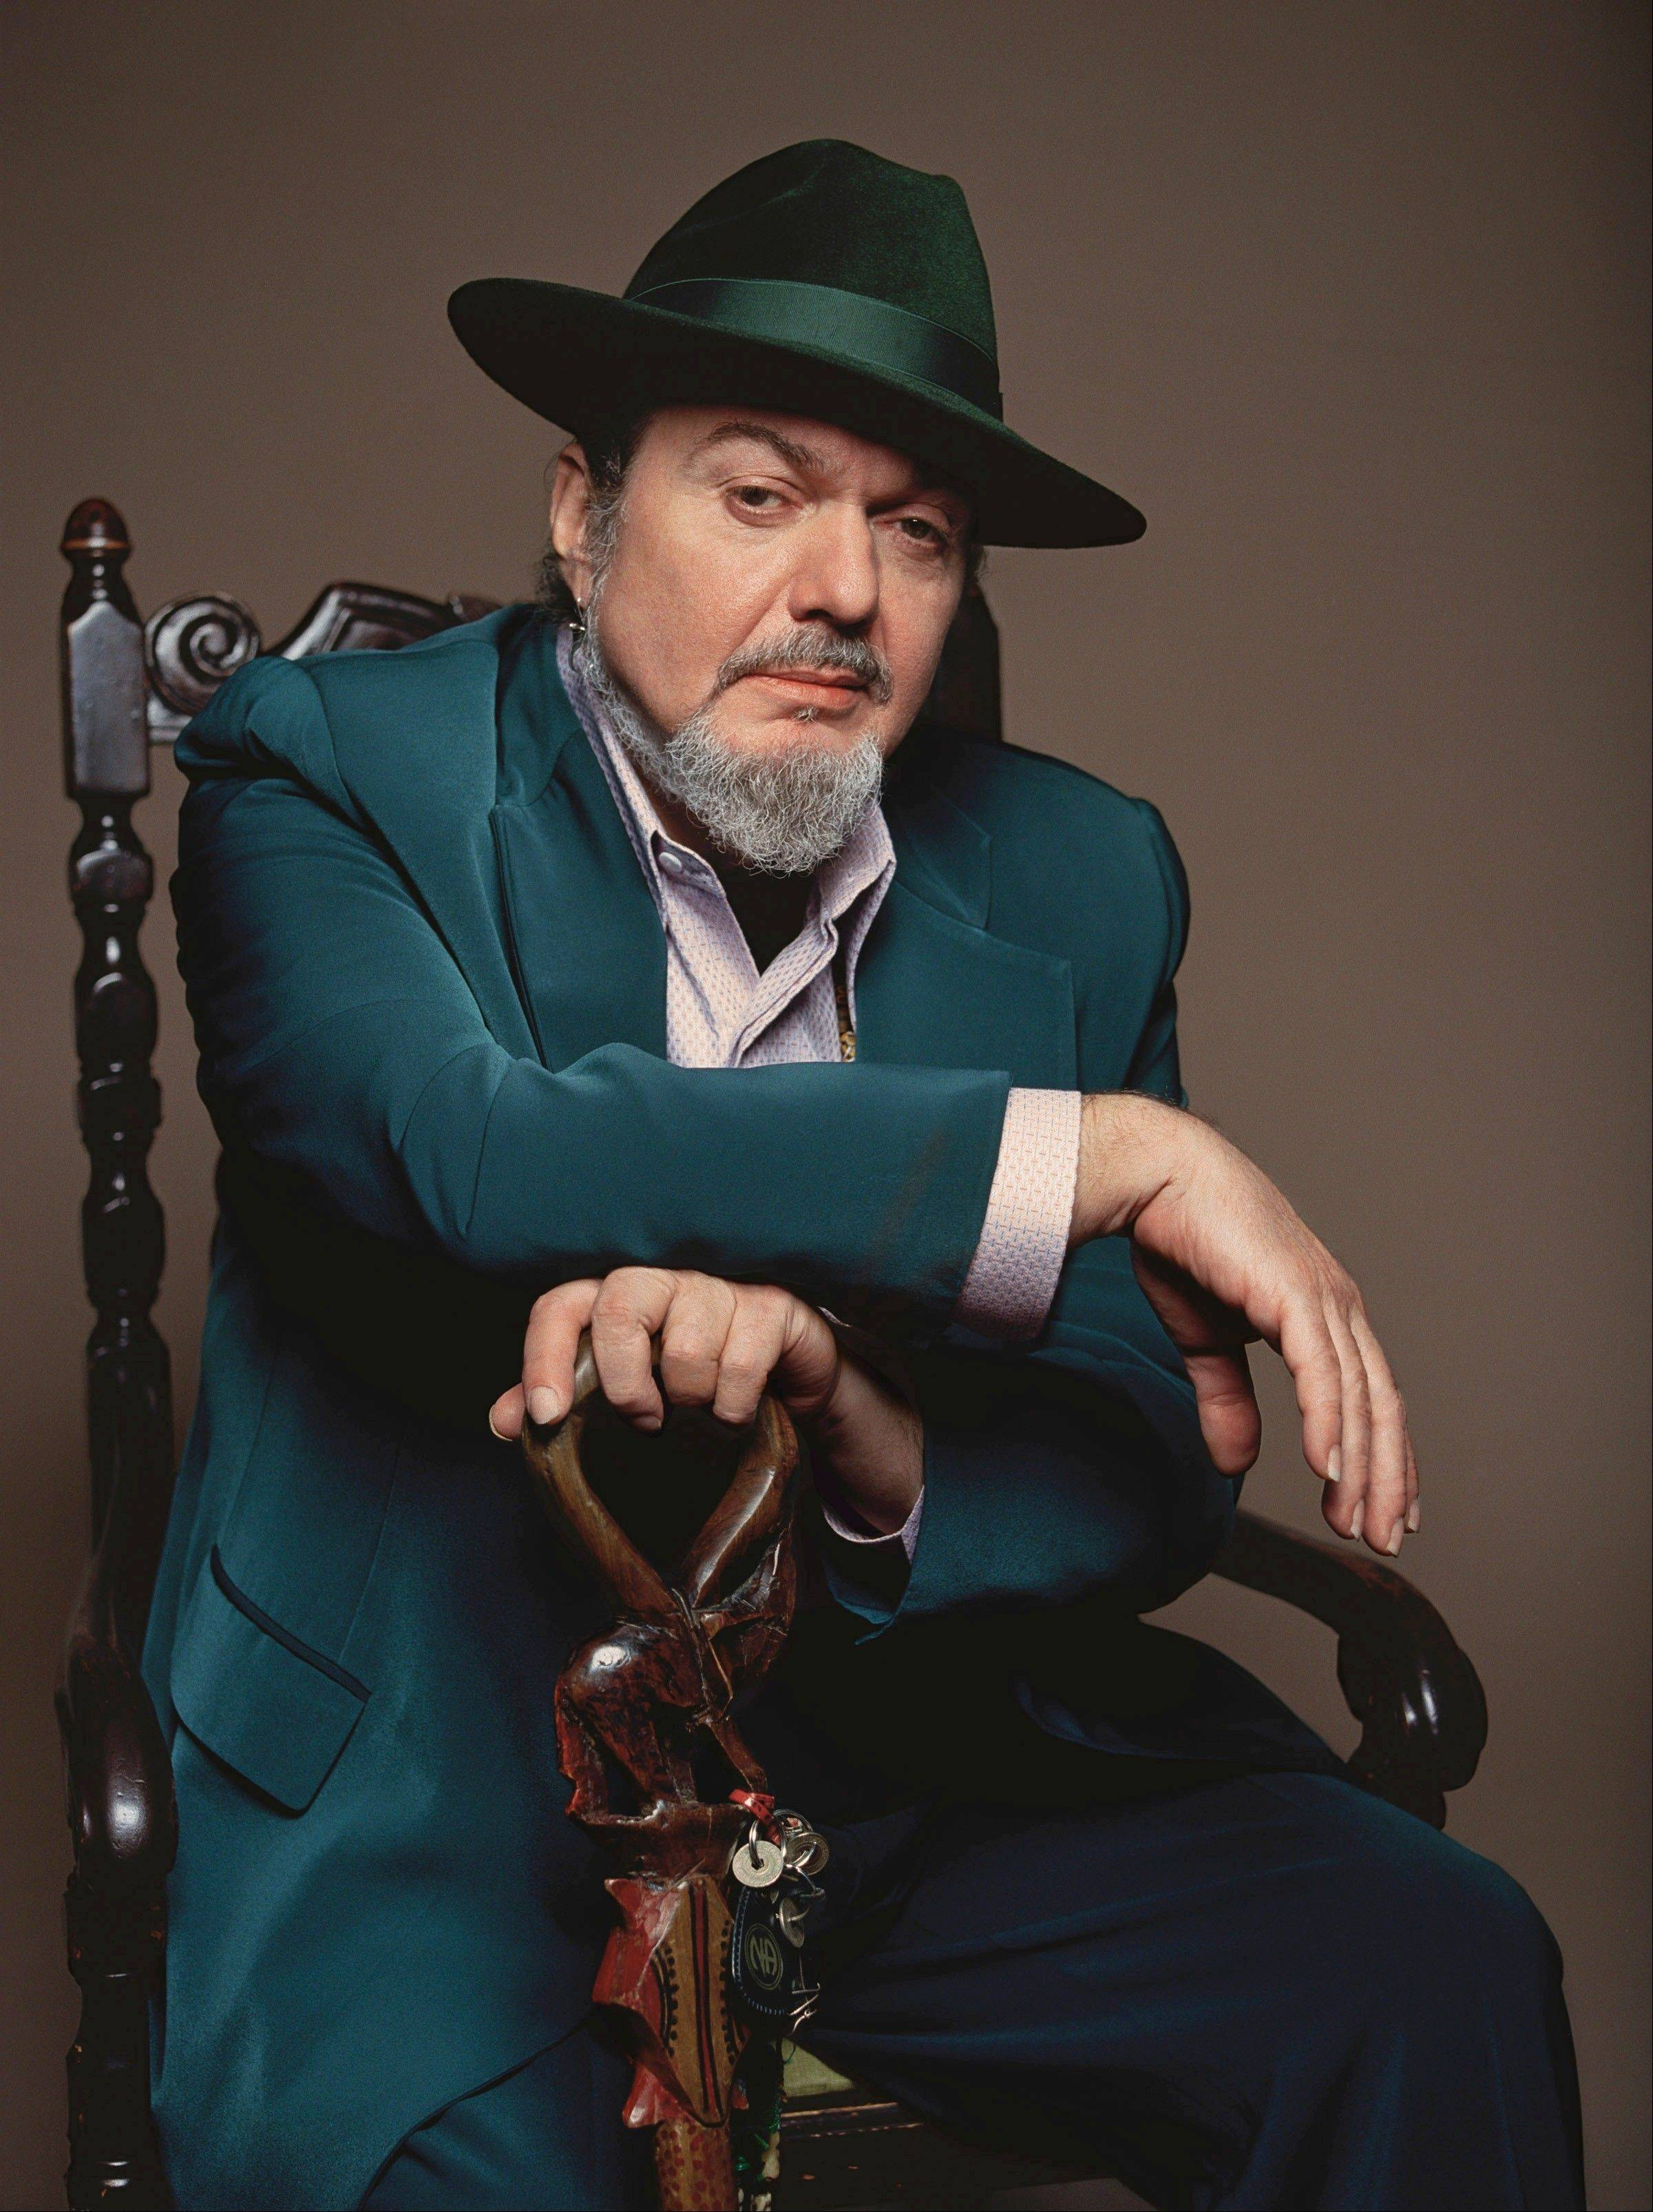 Dr. John will be among the first performers at RiverEdge Park in Aurora as he plays during this year's Blues on the Fox festival June 14 and 15. The $13 million Music Garden at the new park, at 360 N. Broadway Ave., is preparing to open for its first season of concerts and events.